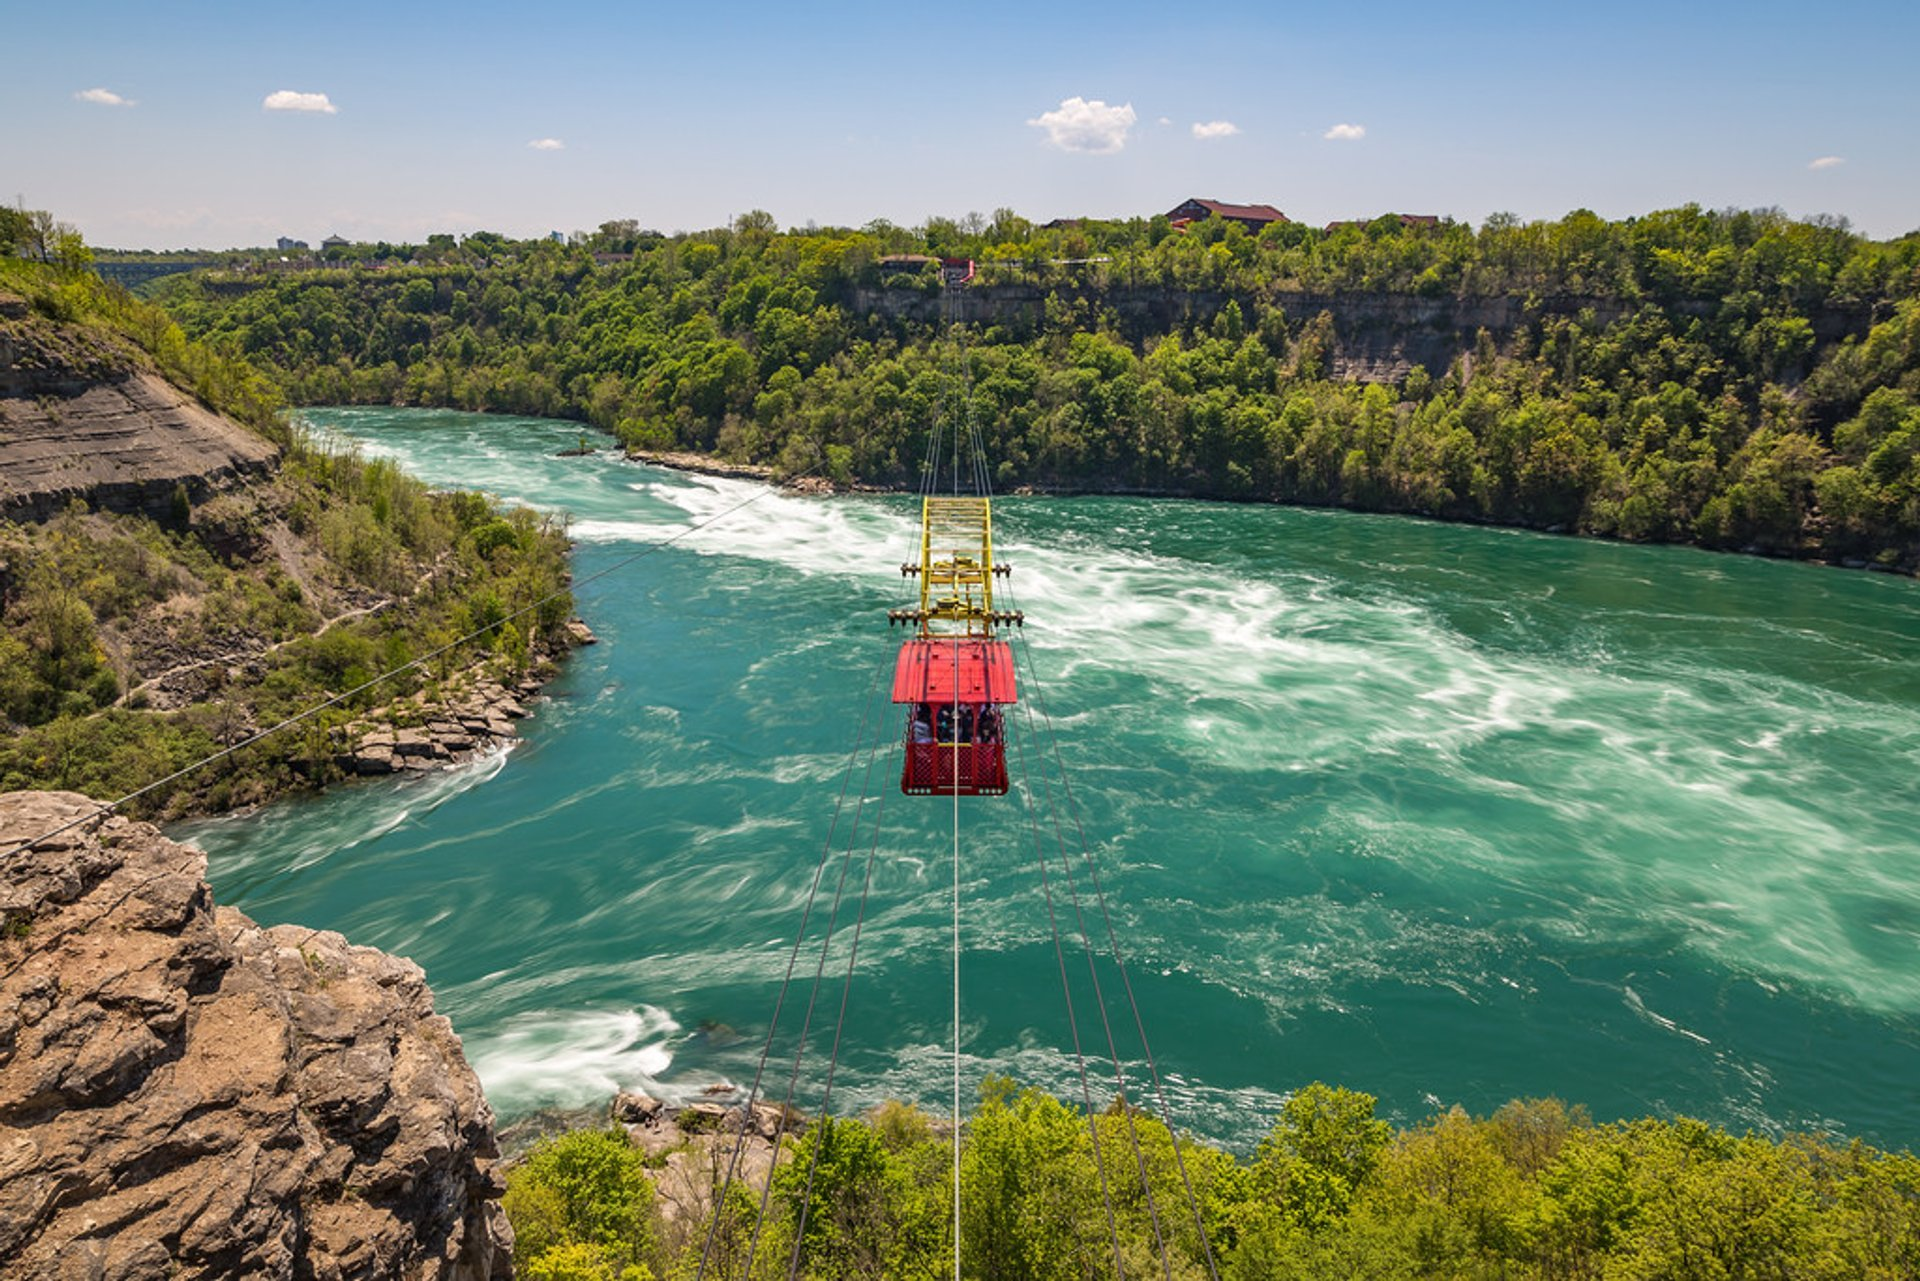 Whirlpool Aero Car in Niagara Falls - Best Season 2019